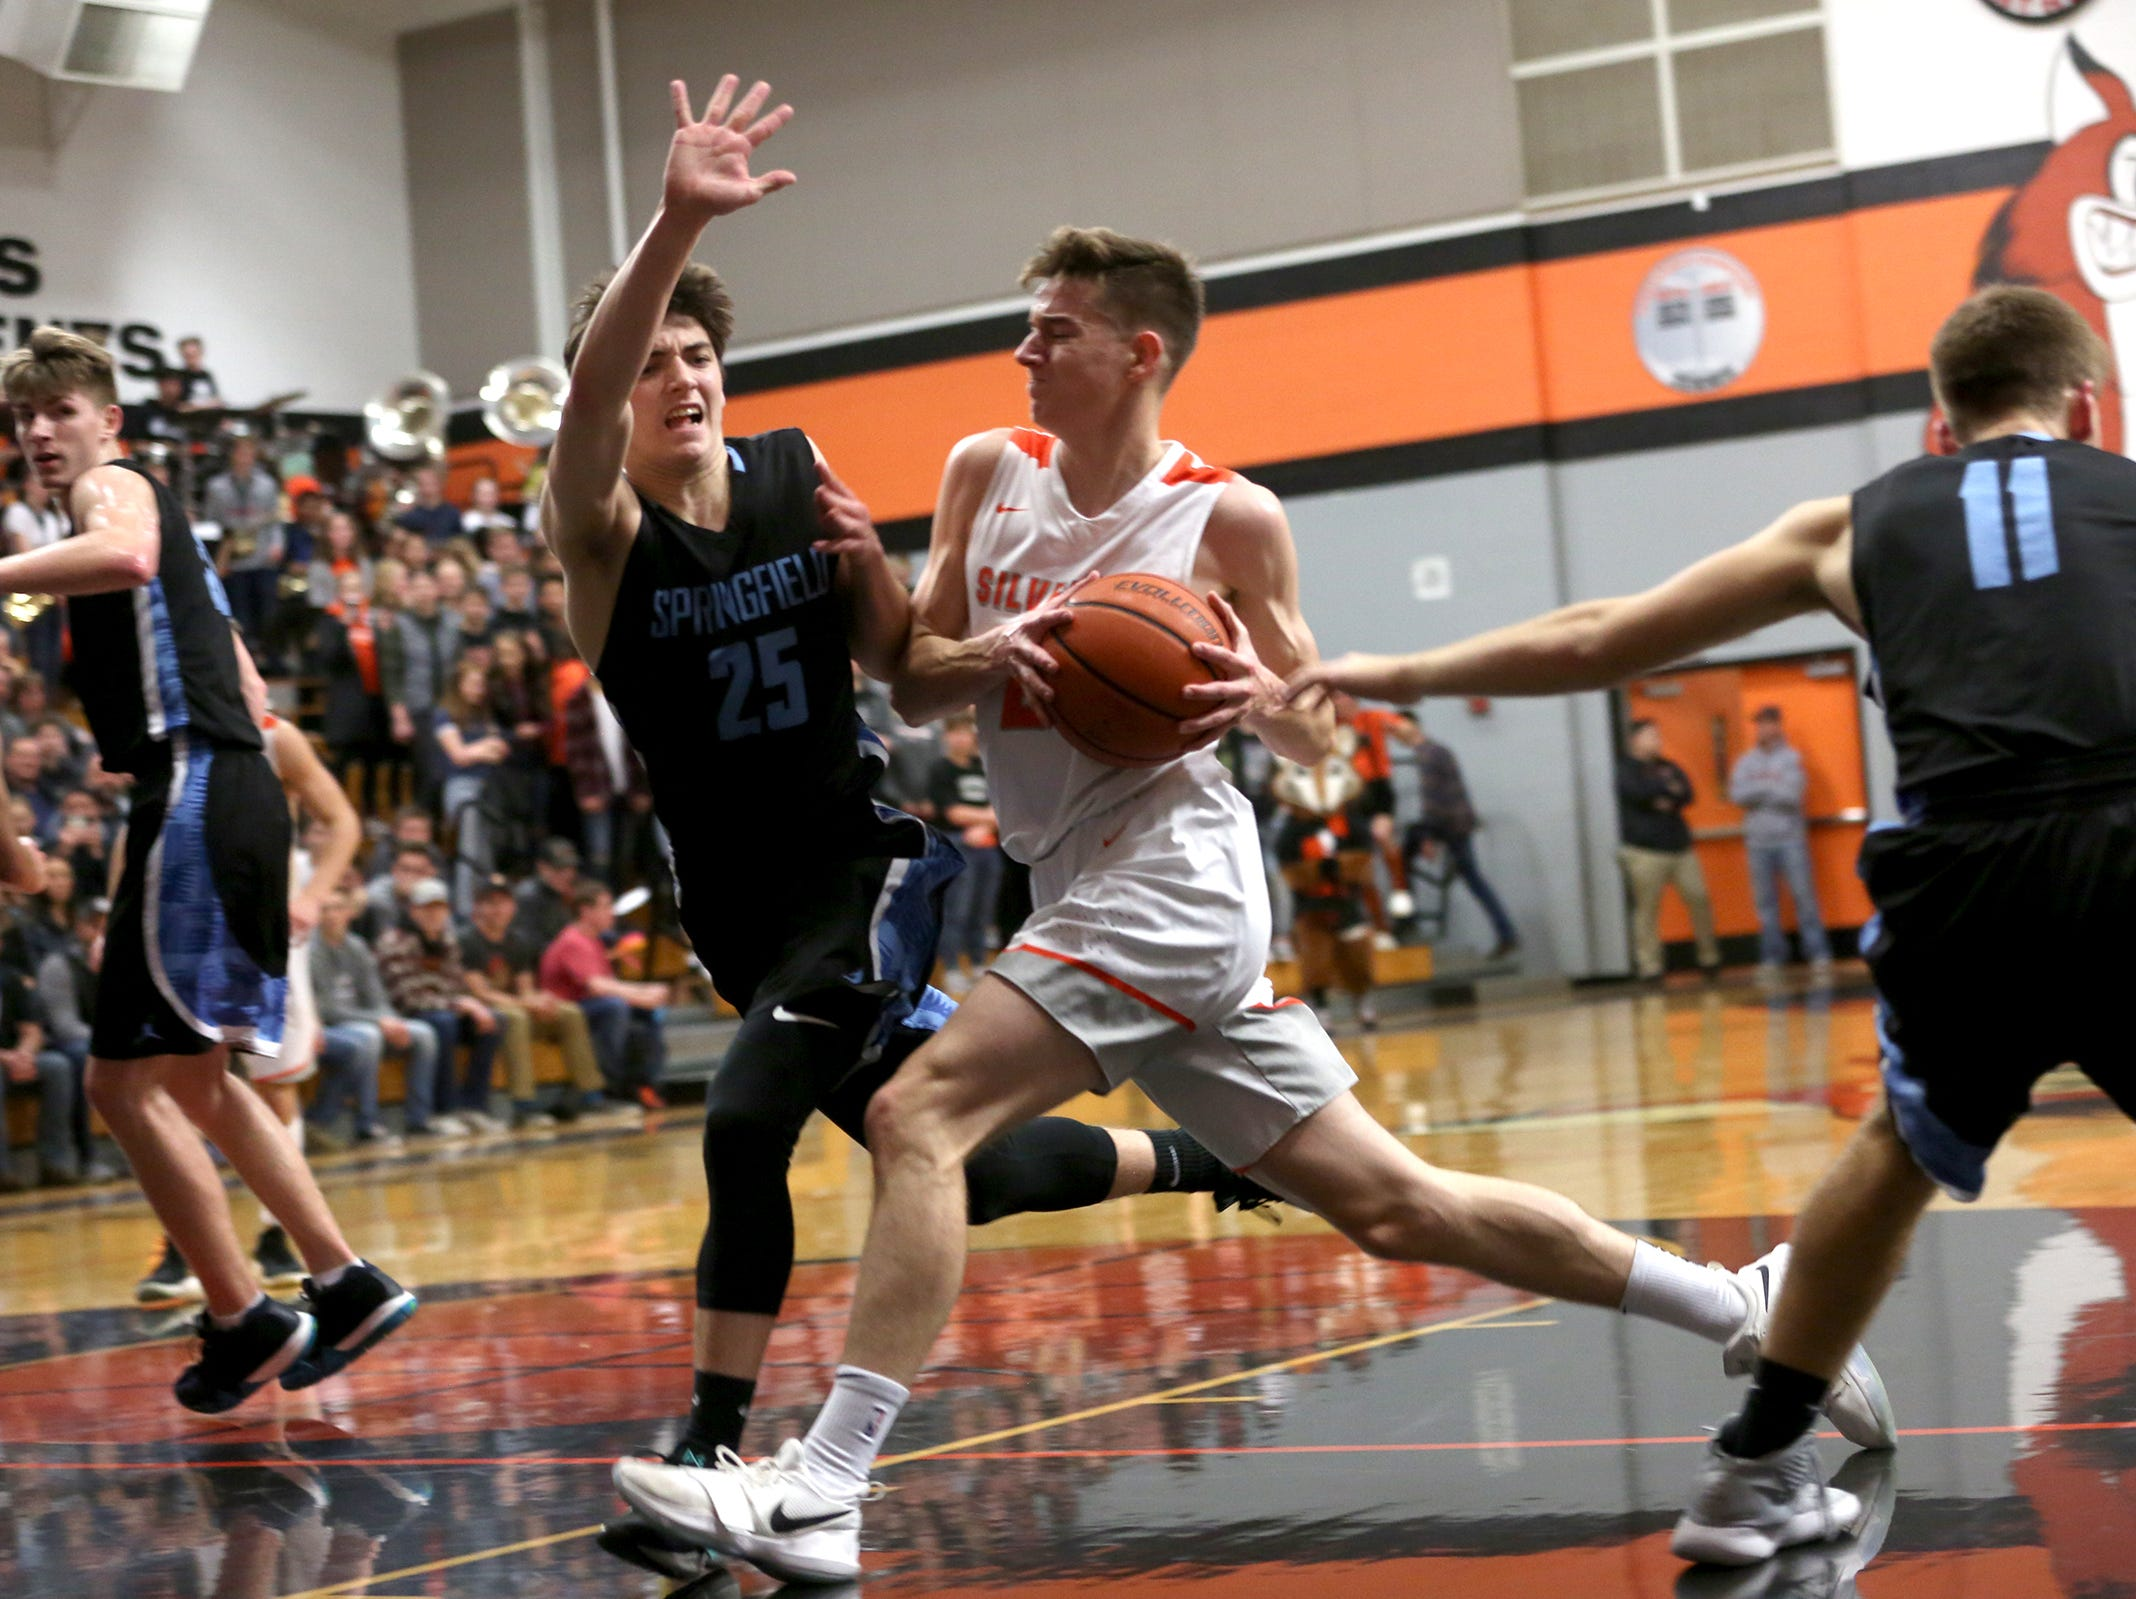 Silverton's Josiah Roth (21) forces his way into the paint during the Silverton vs. Springfield boys basketball OSAA state playoffs game at Silverton High School in Silverton on Saturday, March 2, 2019.